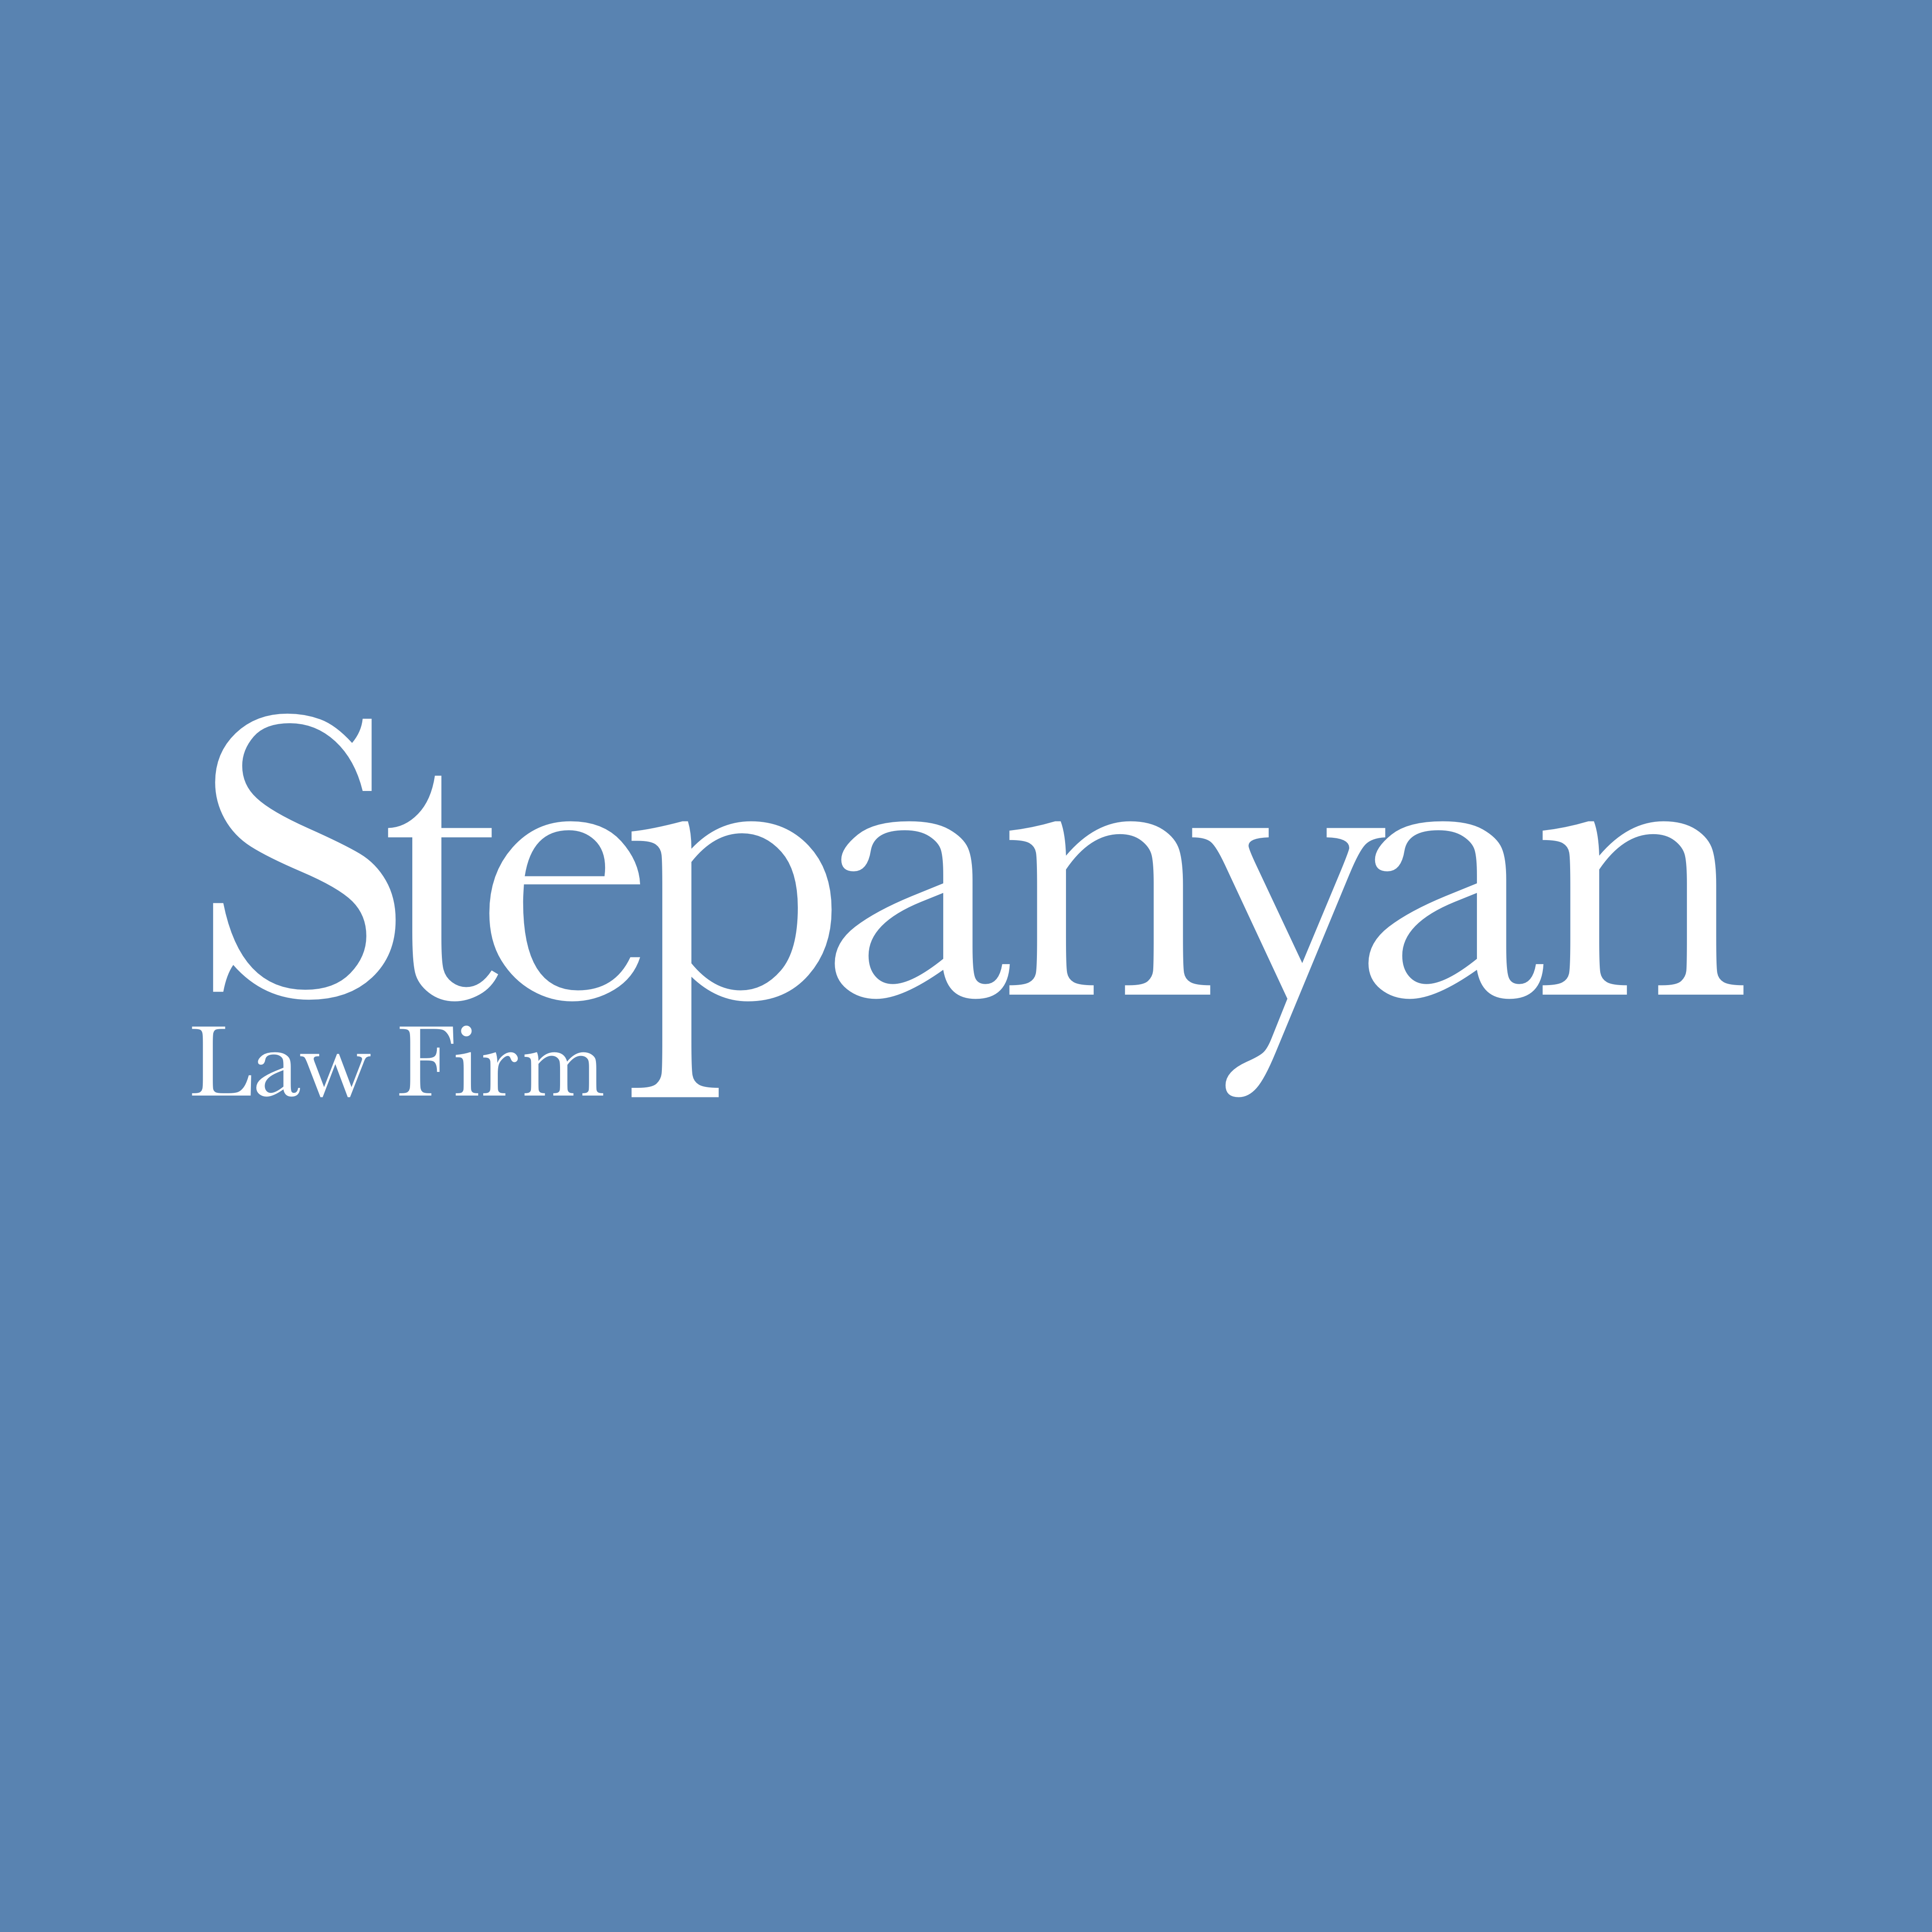 Stepanyan Law Firm Profile Picture